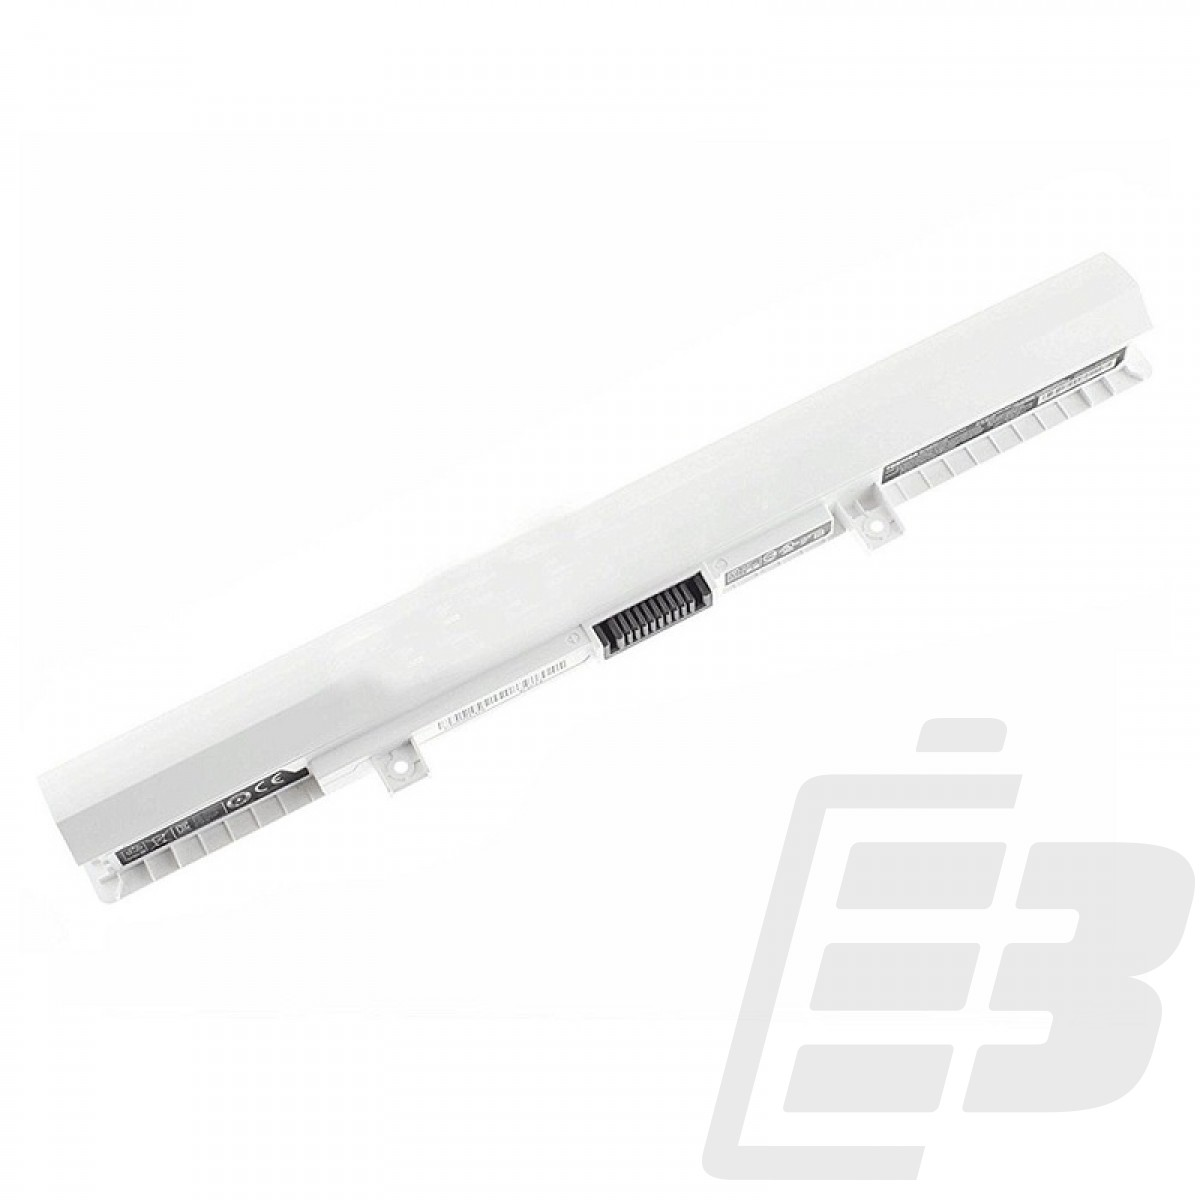 Laptop battery Toshiba Satellite C50 white_1